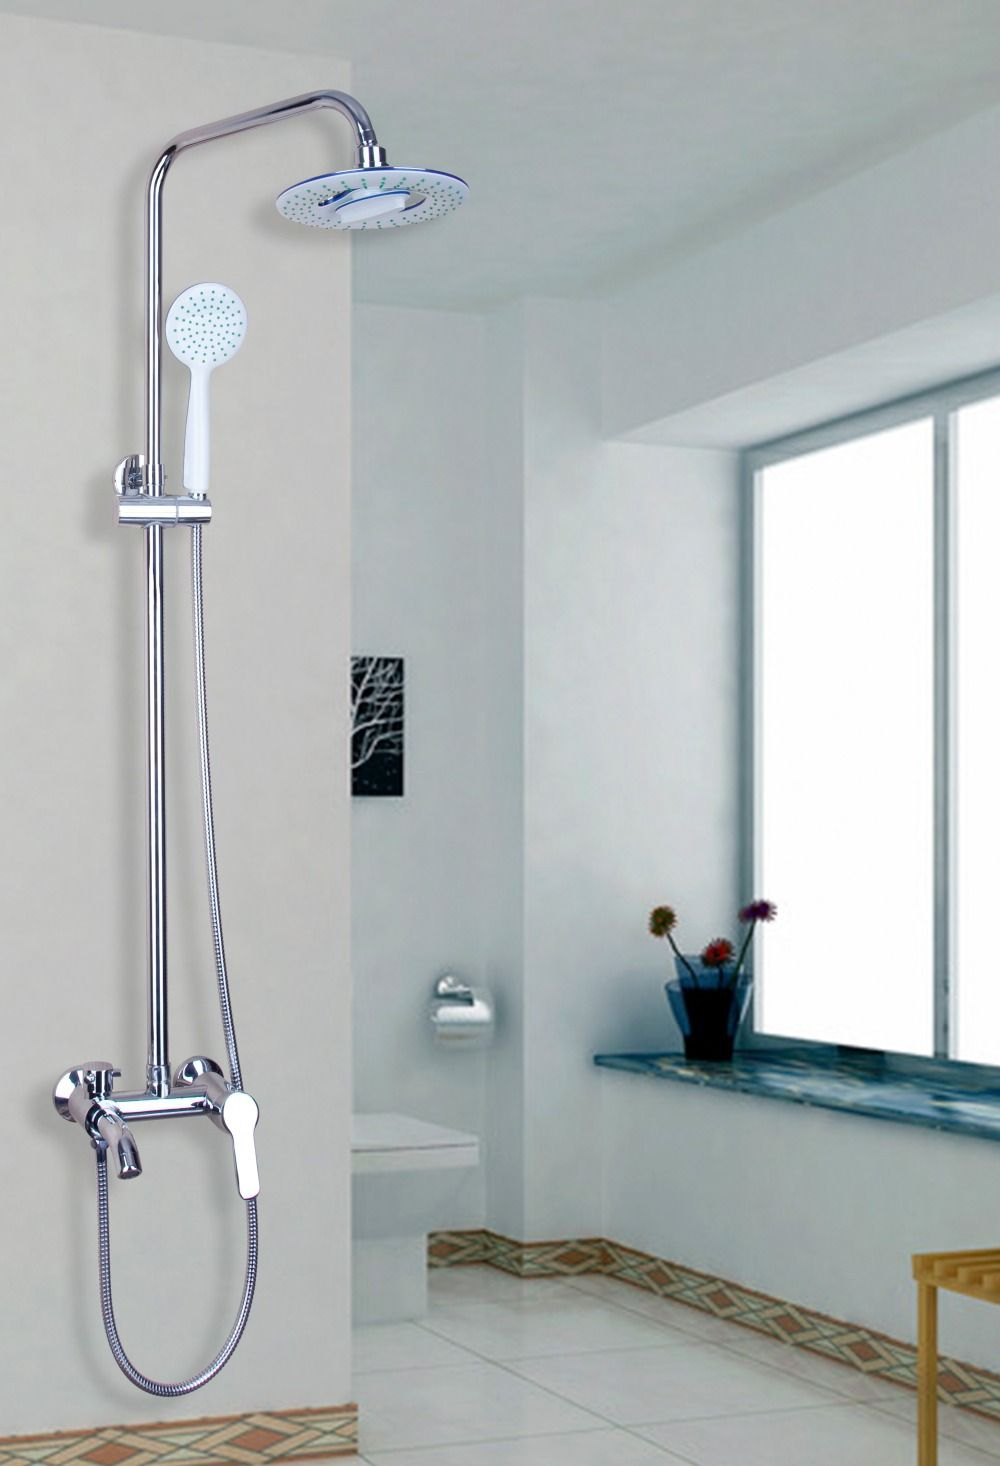 Set Therapy Picture More Detailed Picture About Yanksmart 53508 Round 8 Over Head Waterfall Rainfall Wa Shower Faucet Sets Bathroom Rain Bathroom Mixer Taps [ 1466 x 1000 Pixel ]